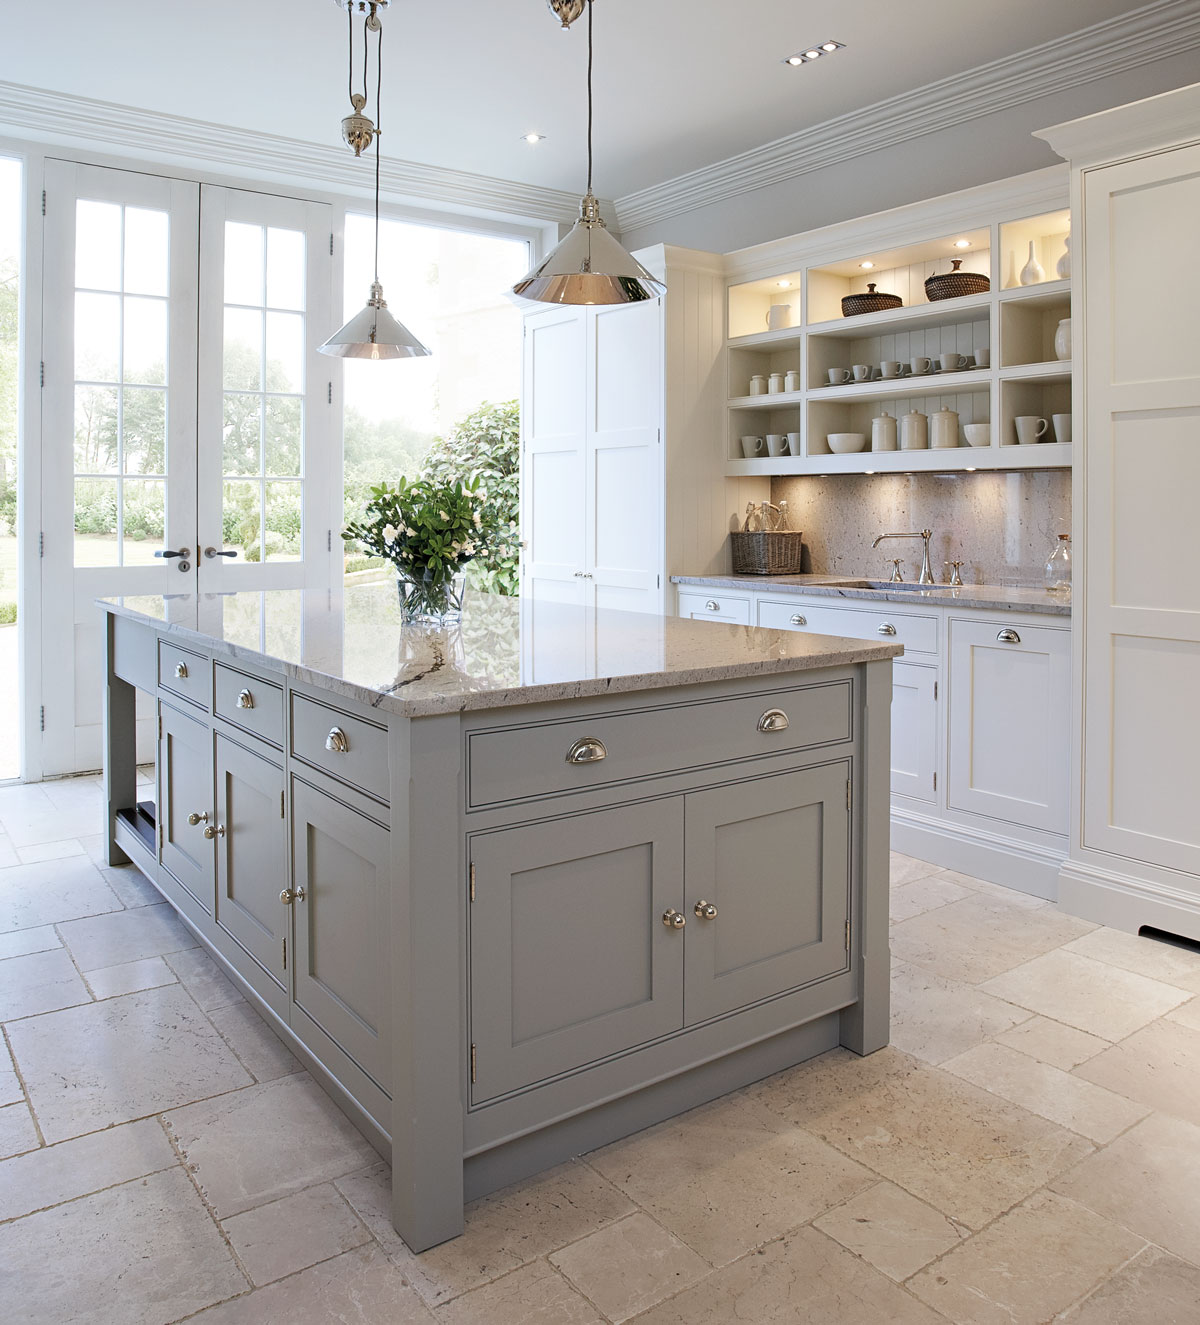 Tempting Our Talented Designers Will Work All Features You Kitchen Islands Can Be Kitchen Islands Tom Howley You To Create Island Foryour kitchen Islands In The Kitchen